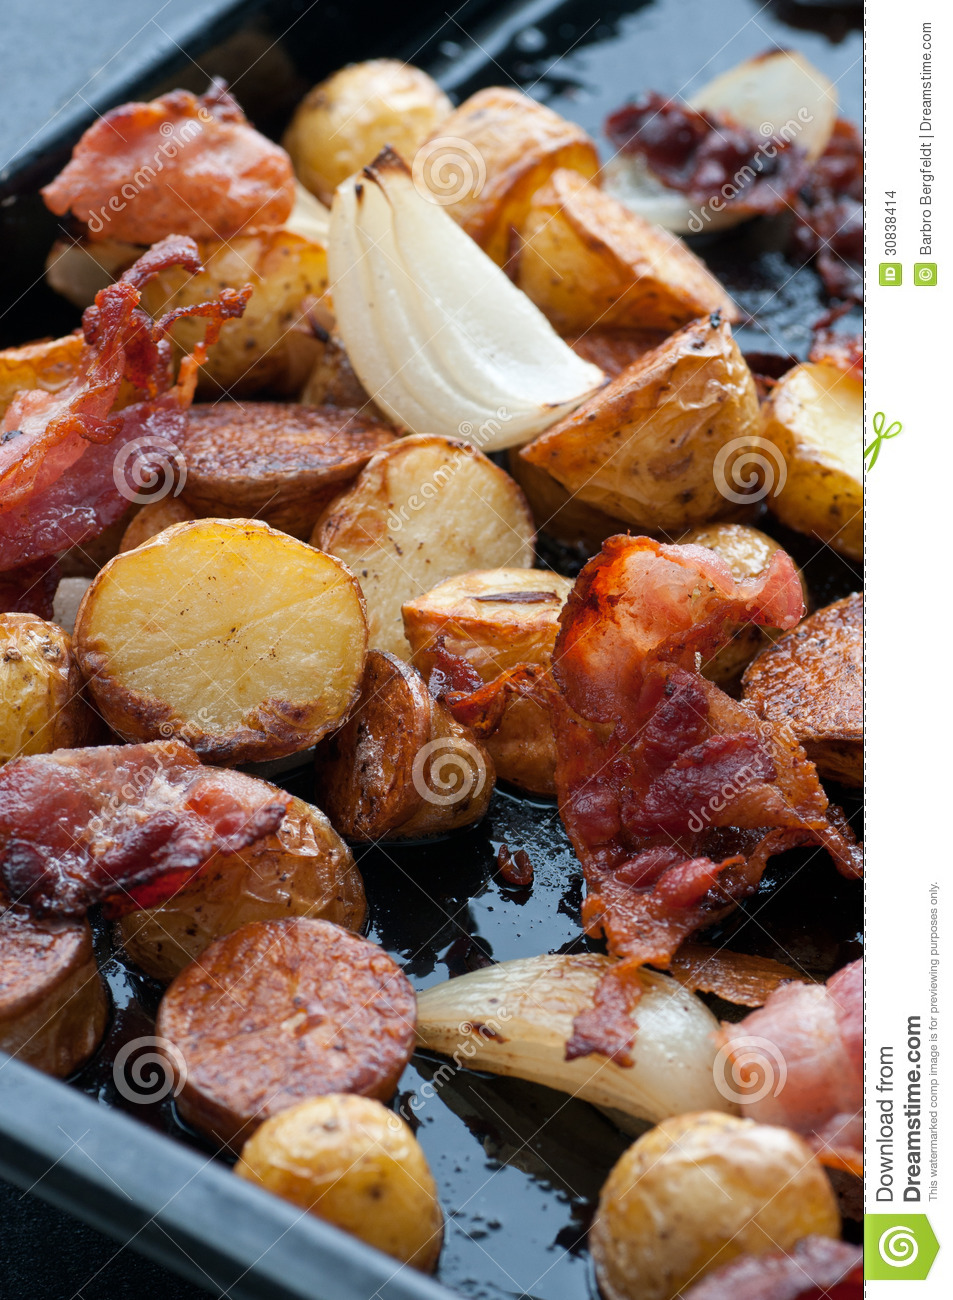 roasted-potato-bacon-onion-potatoes-onions-30838414.jpg